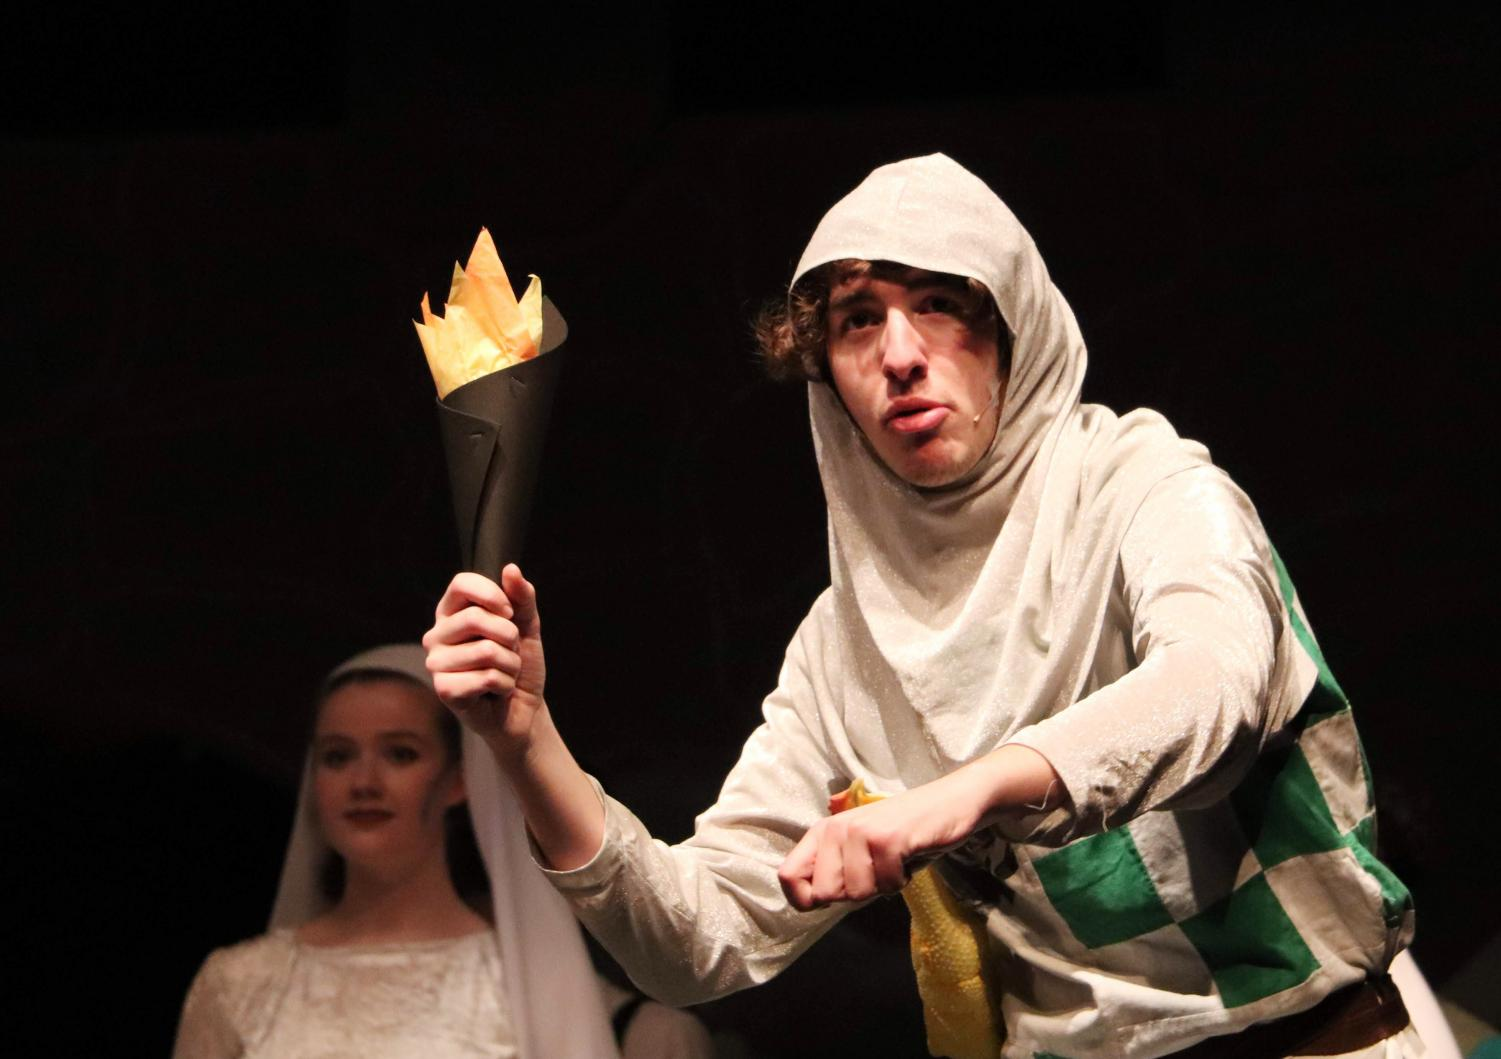 Holding+a+torch%2C+junior+Noah+Stussie+rides+an+imaginary+horse+during+the+winter+musical%2C+Monty+Python%27s+Spamalot+on+Jan.+25.+Stussie+was+a+knight+of+the+round+table+and+accompanied+King+Arthur+on+his+quest+to+find+the+Holy+Grail.